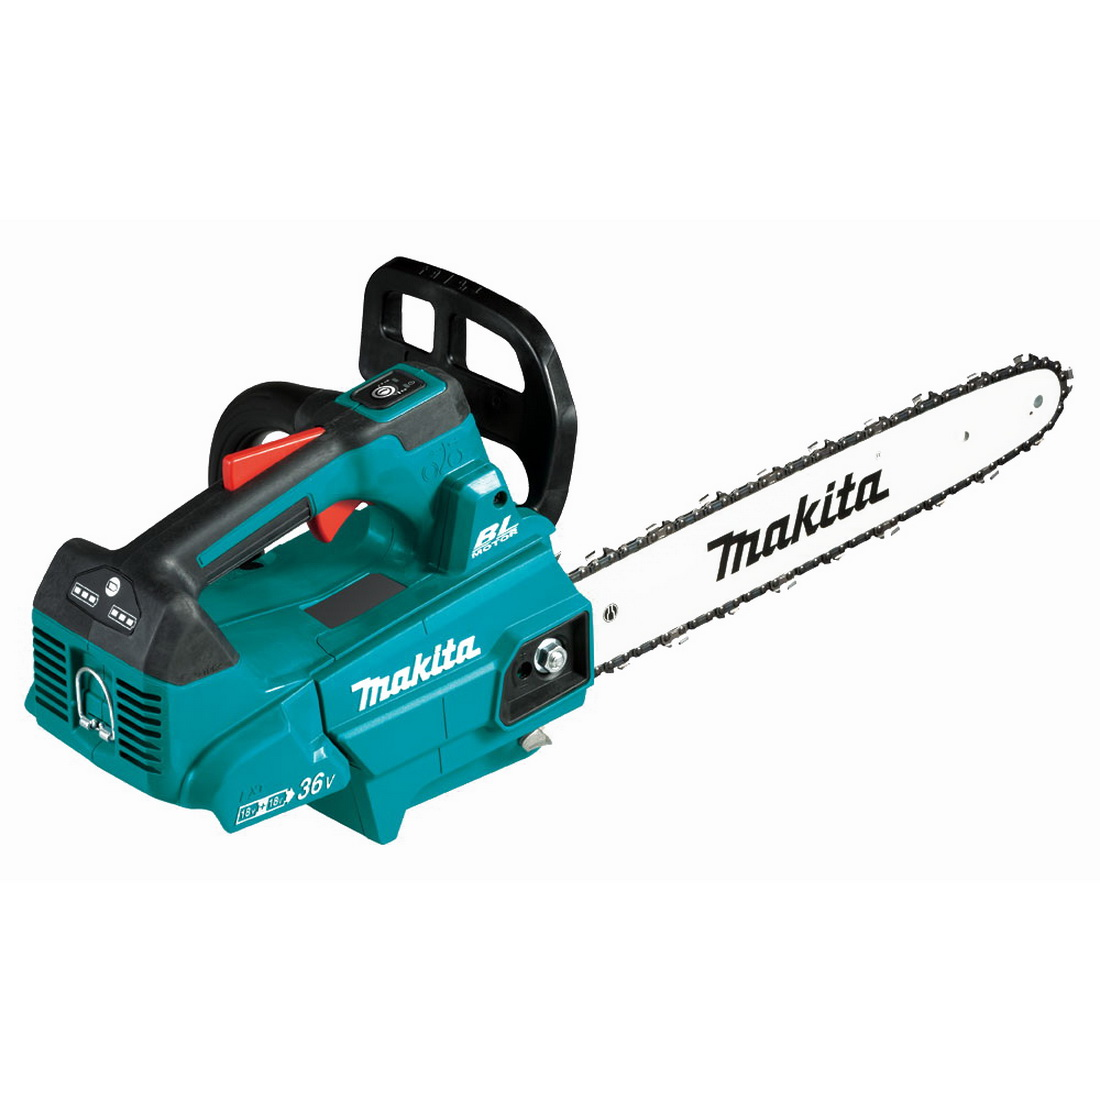 2 x 18V 5Ah 350mm Lithium-Ion Brushless Top Handle Chainsaw Kit